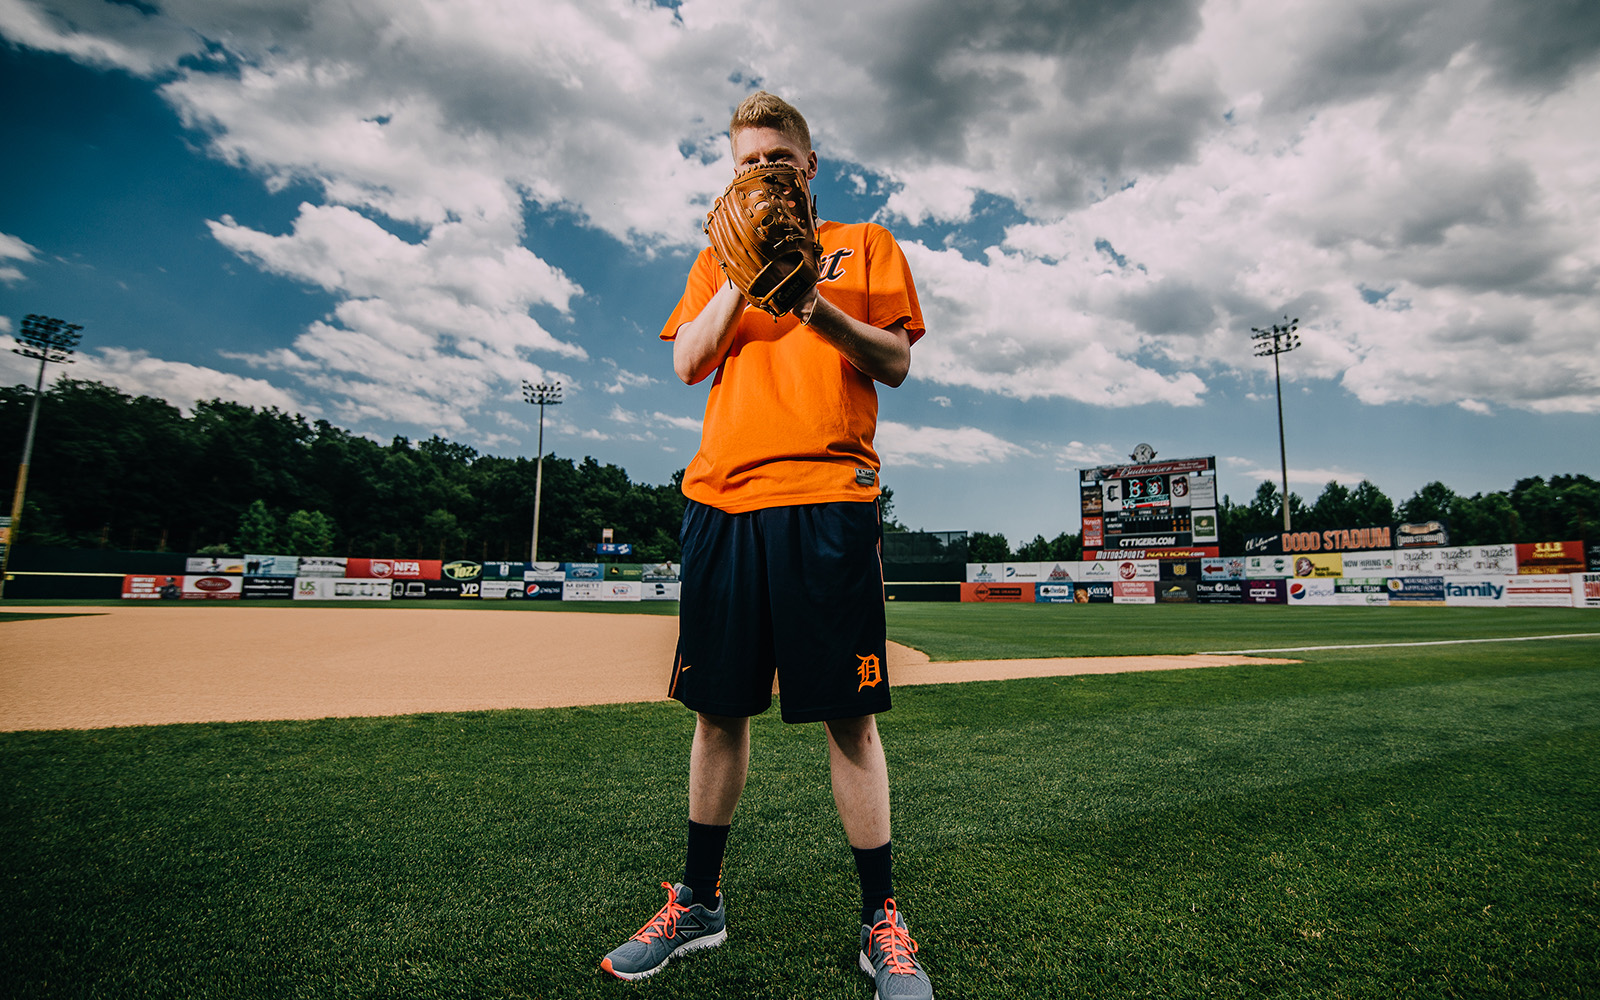 Logan Bement '16 Uses Marketing, Data to Improve Professional Baseball for Fans, Players